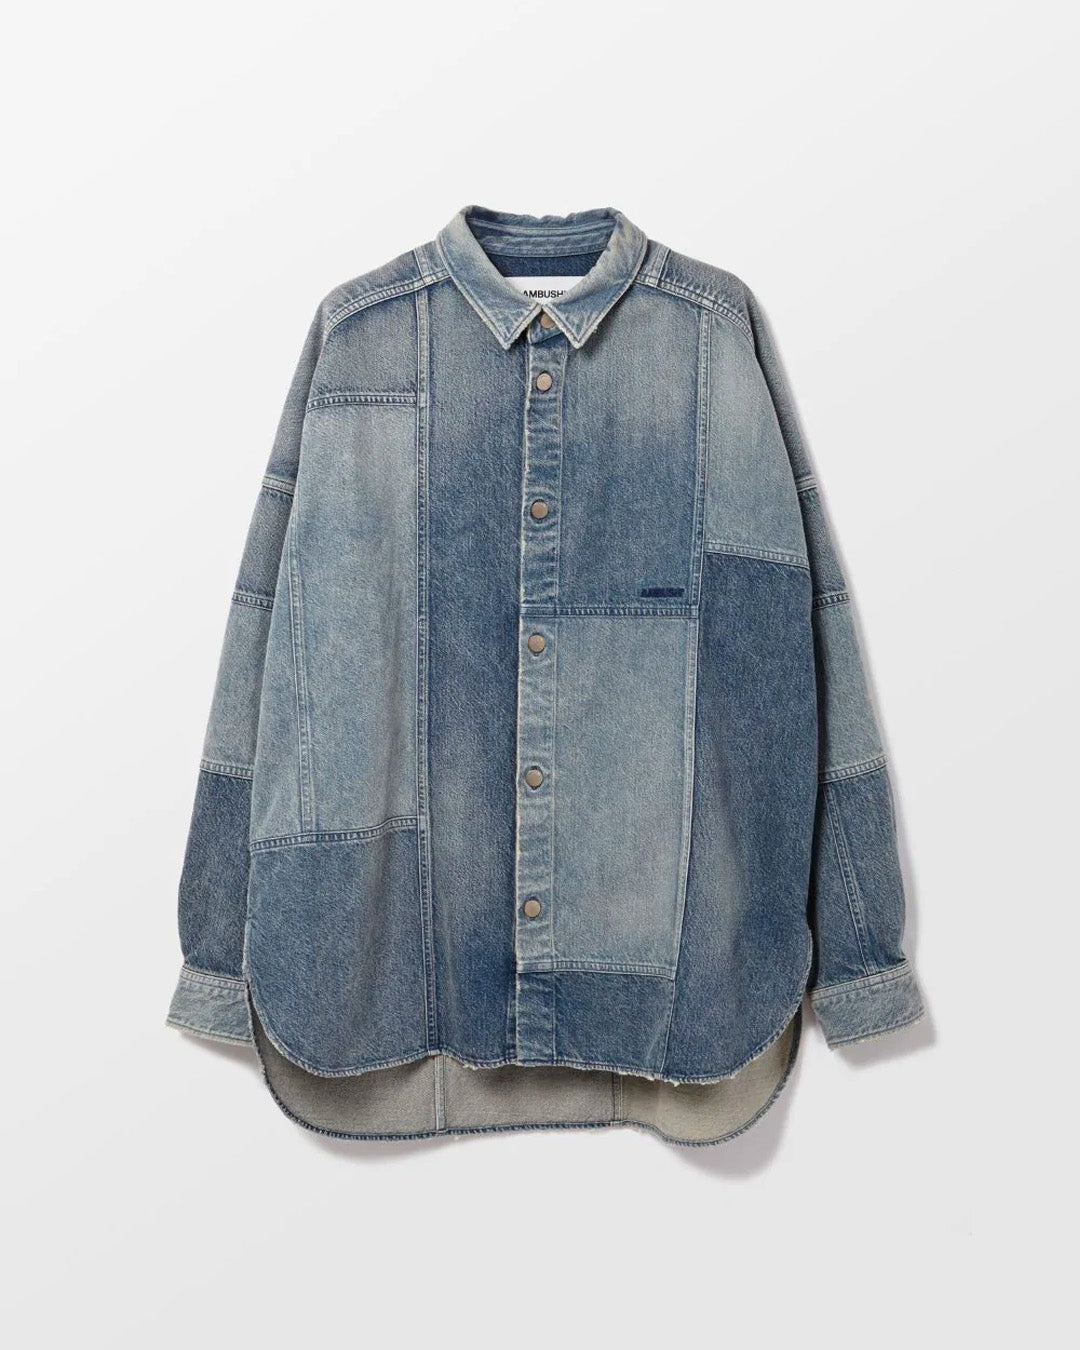 AMBUSH PATCHWORK DENIM SHIRT